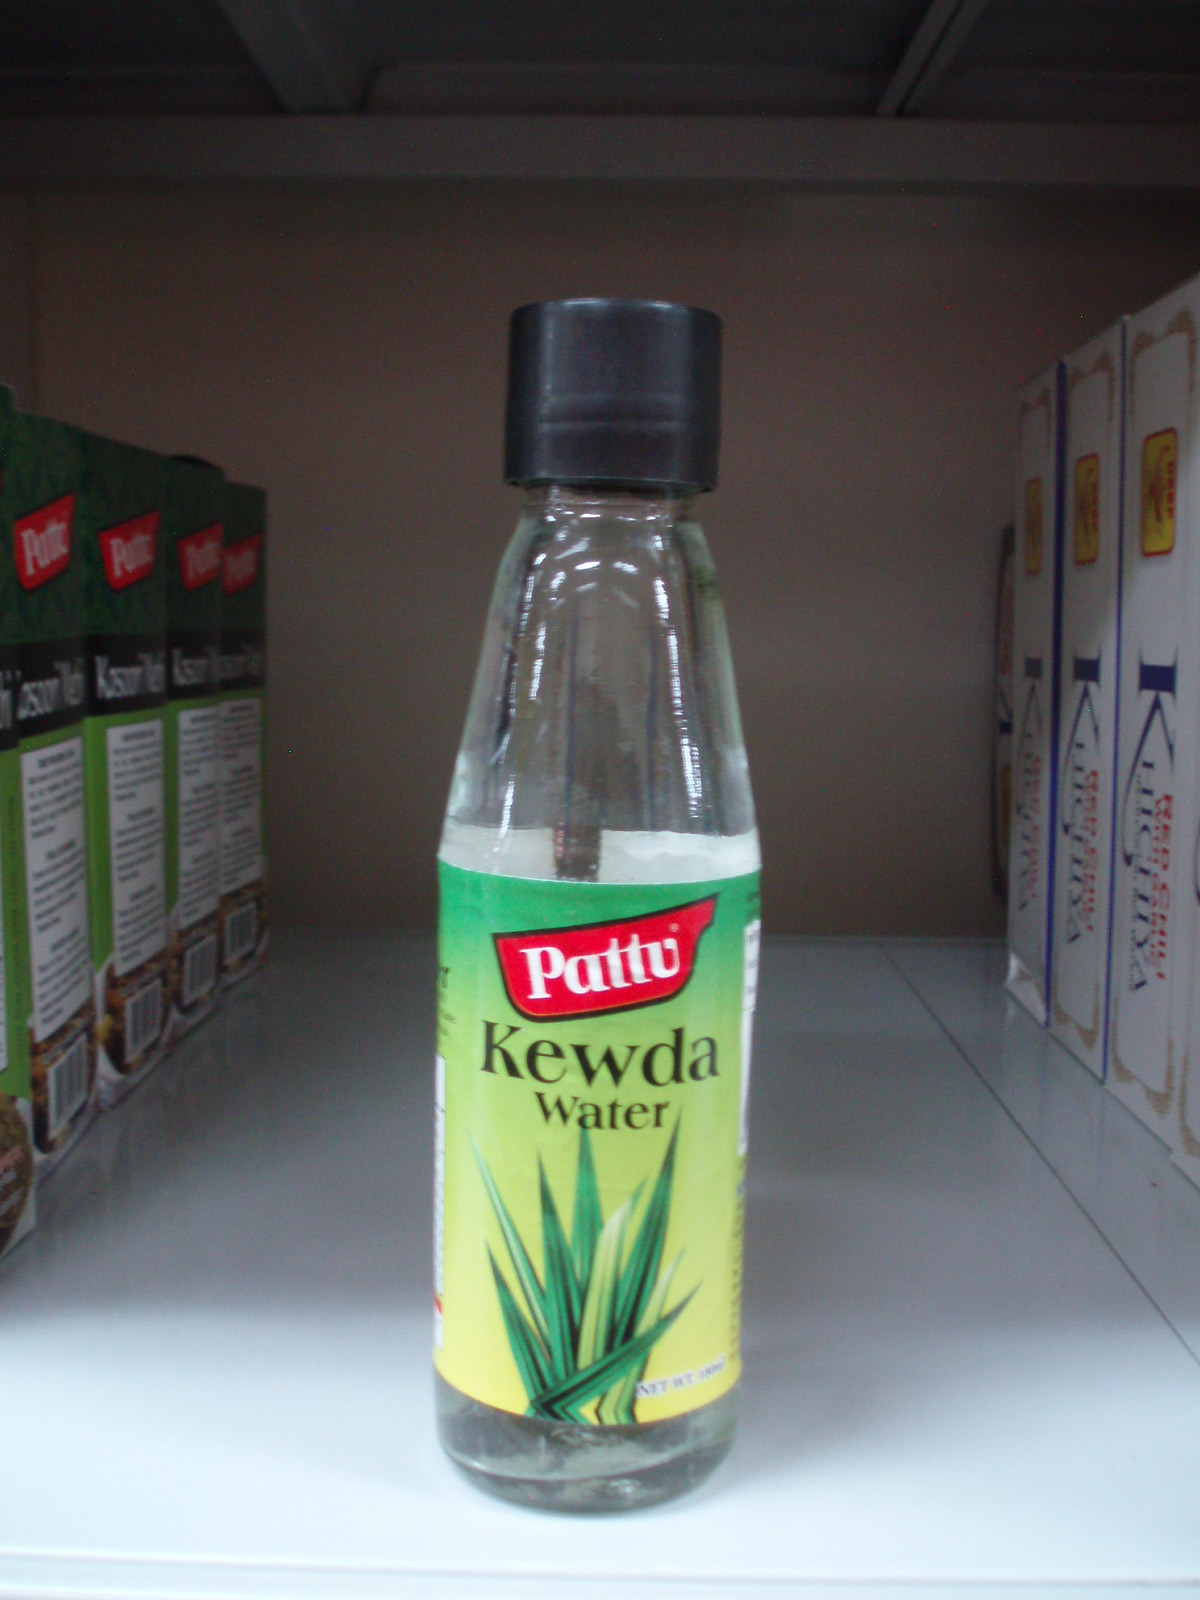 Kewda Water-Pattu-180 ml